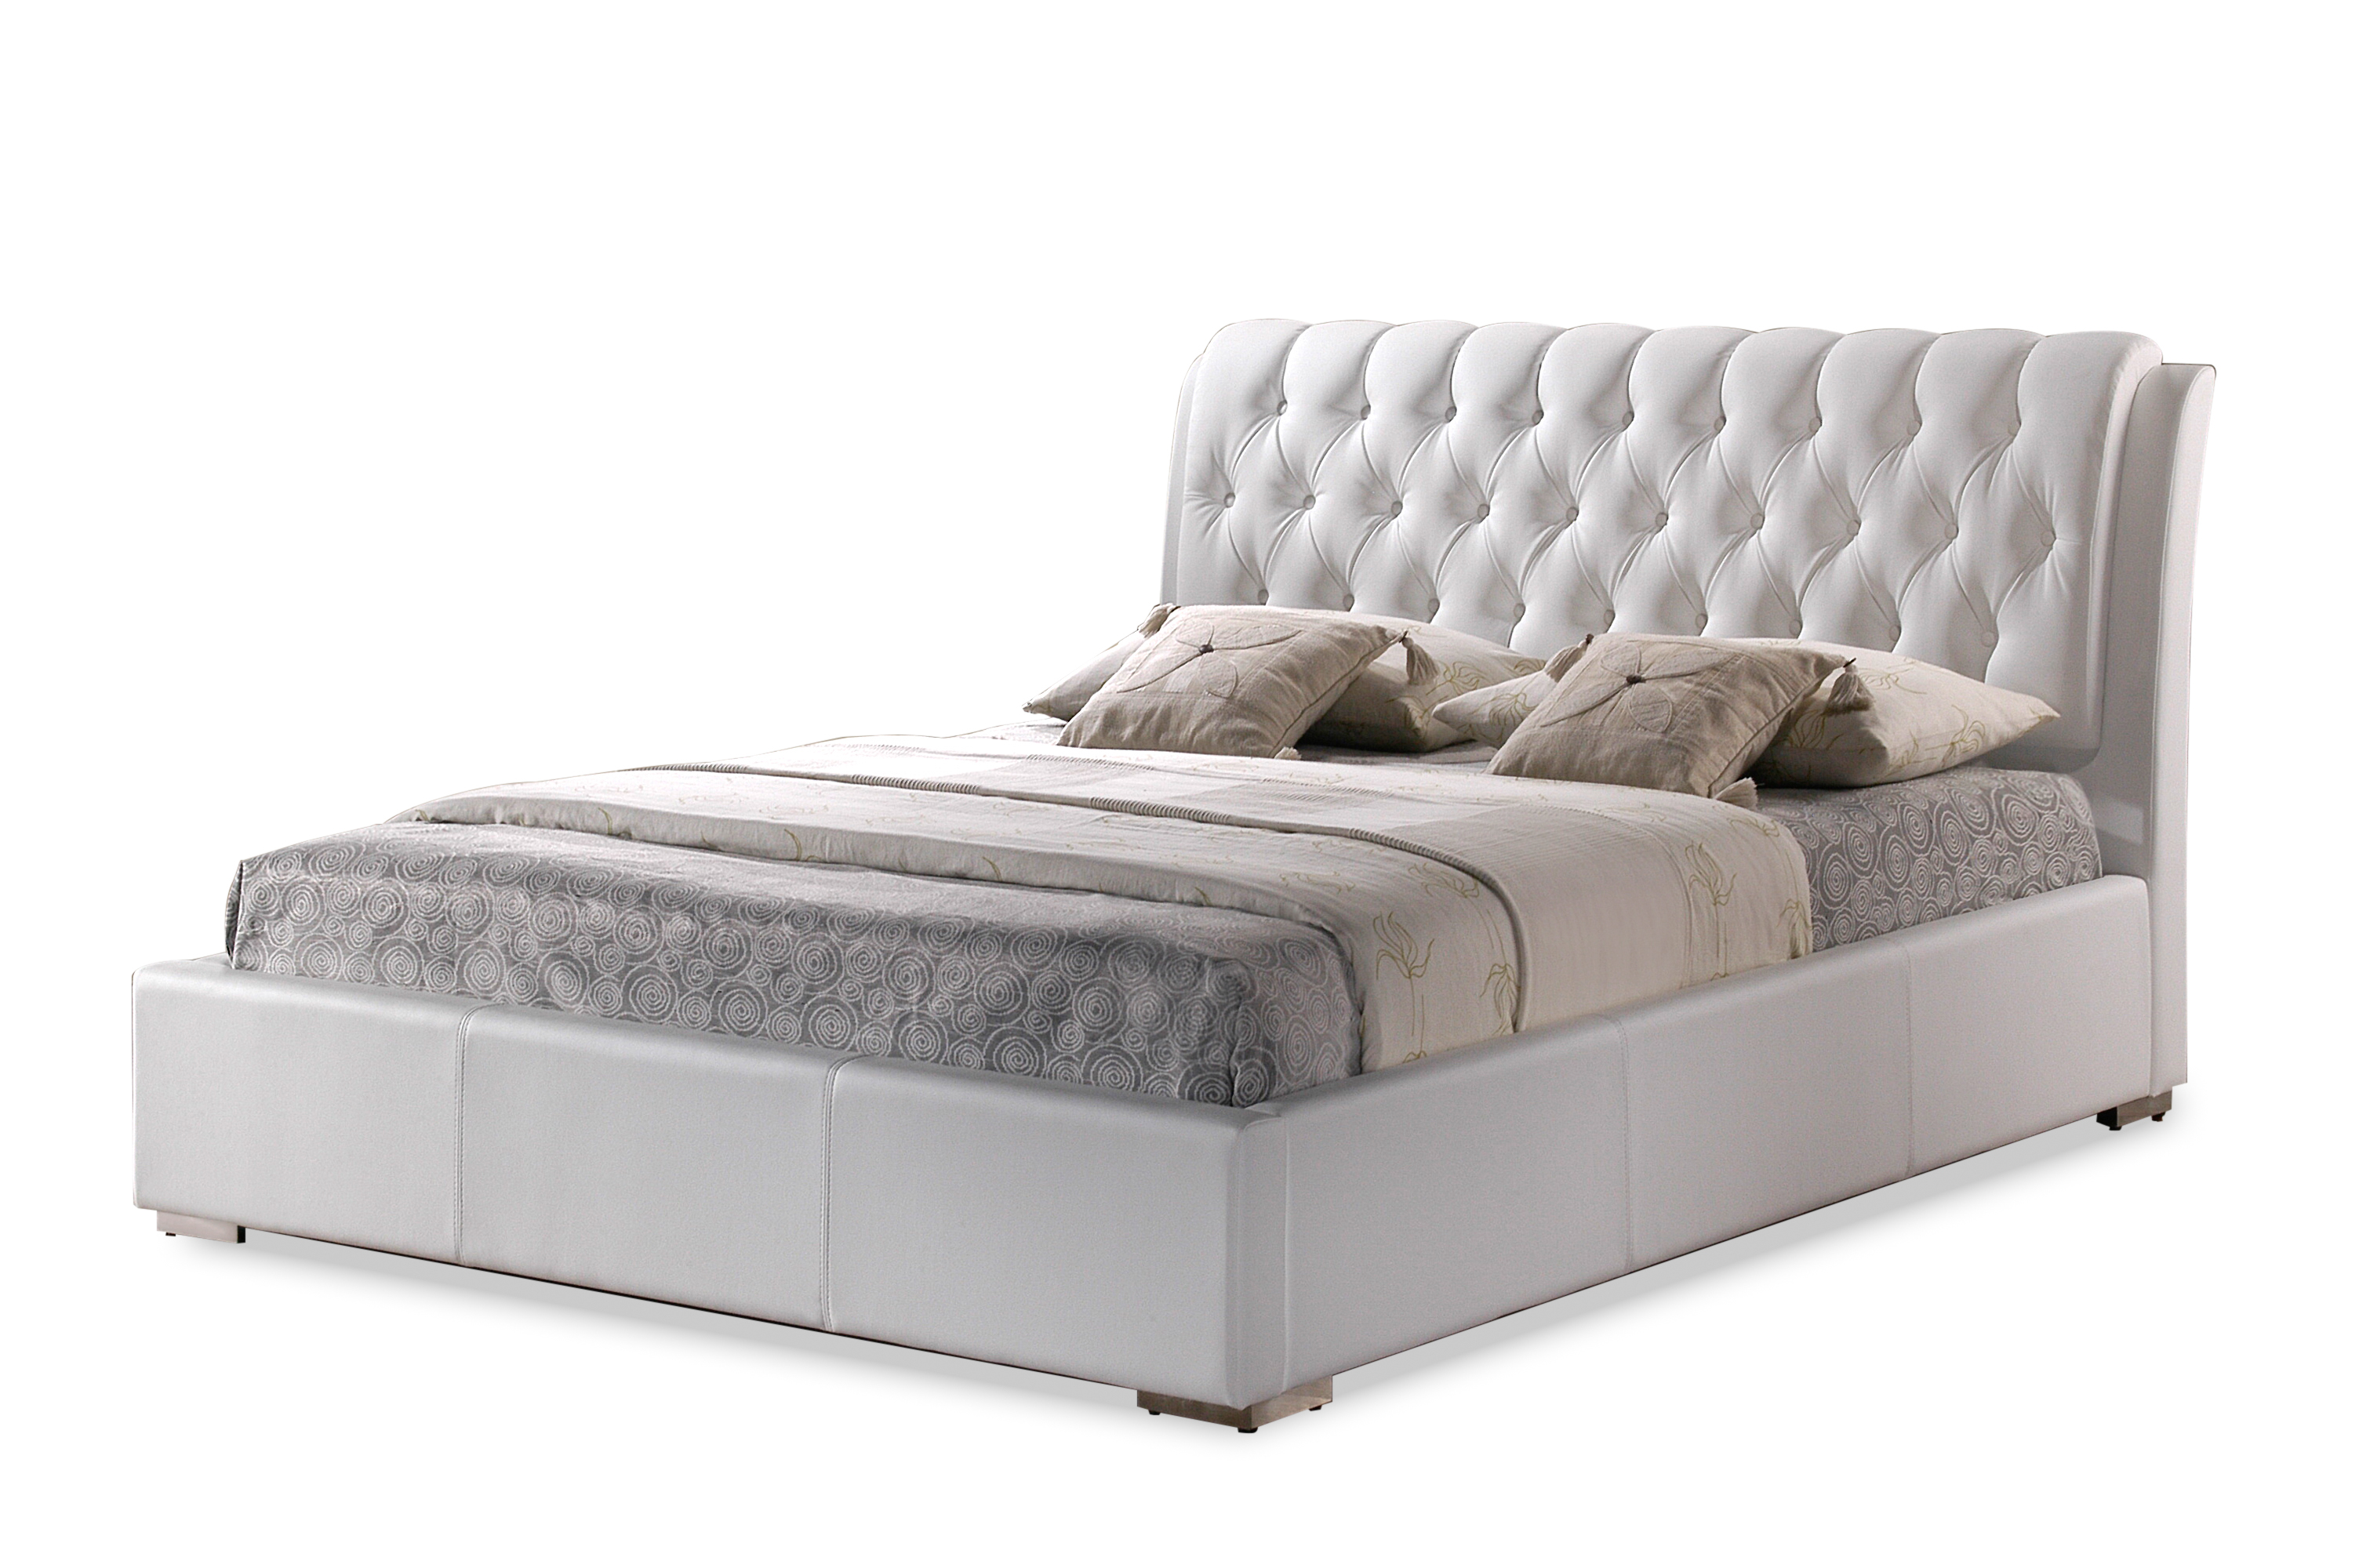 product in pl creek beaver s category albany mattresses mattress furniture clifton bedding q silo for full firm less beautyrest mooradian size